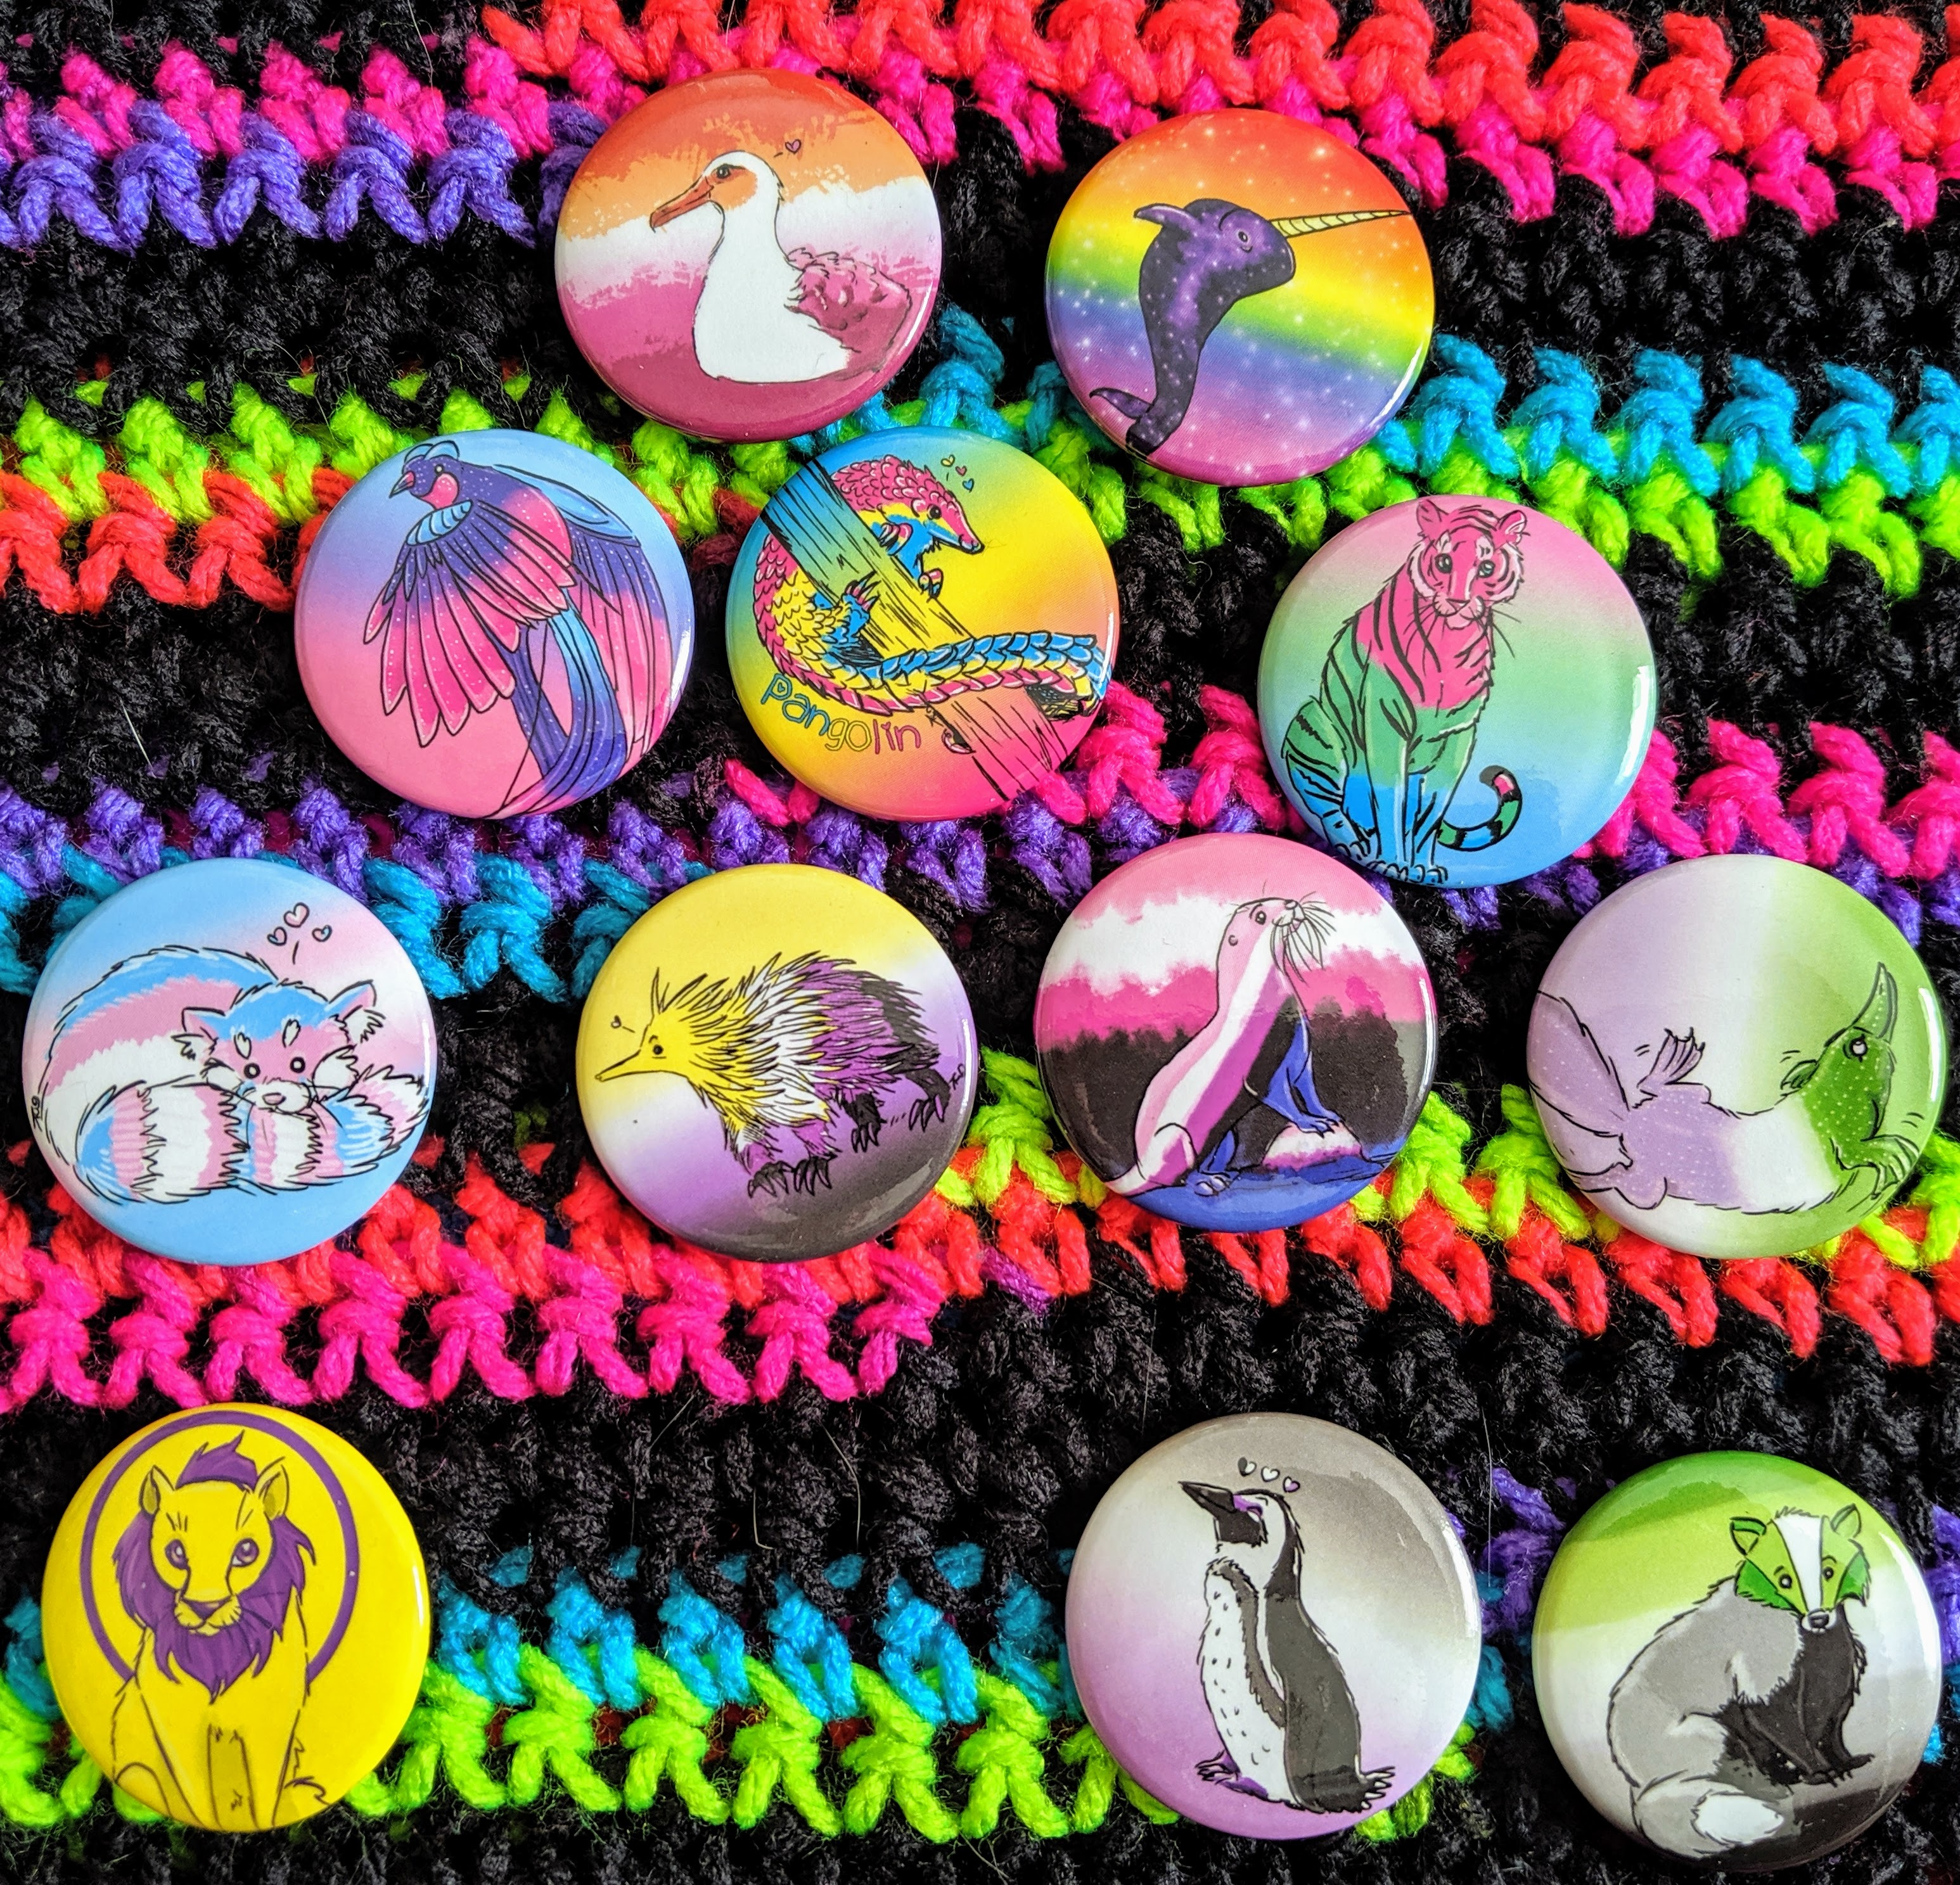 photo of animal buttons in various Pride flag colors